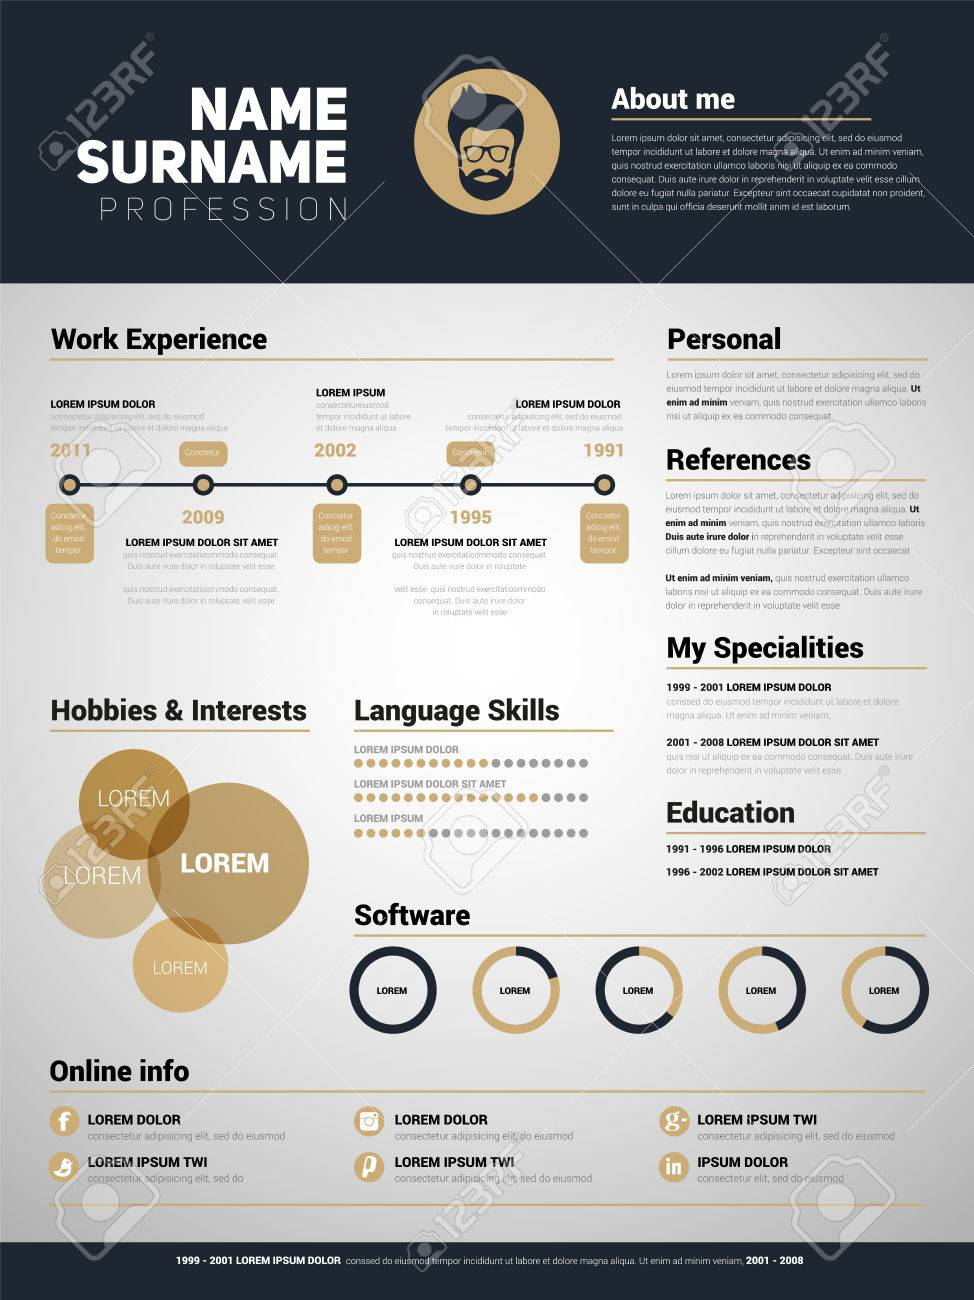 Minimalist CV, Resume Template With Simple Design Royalty Free ...